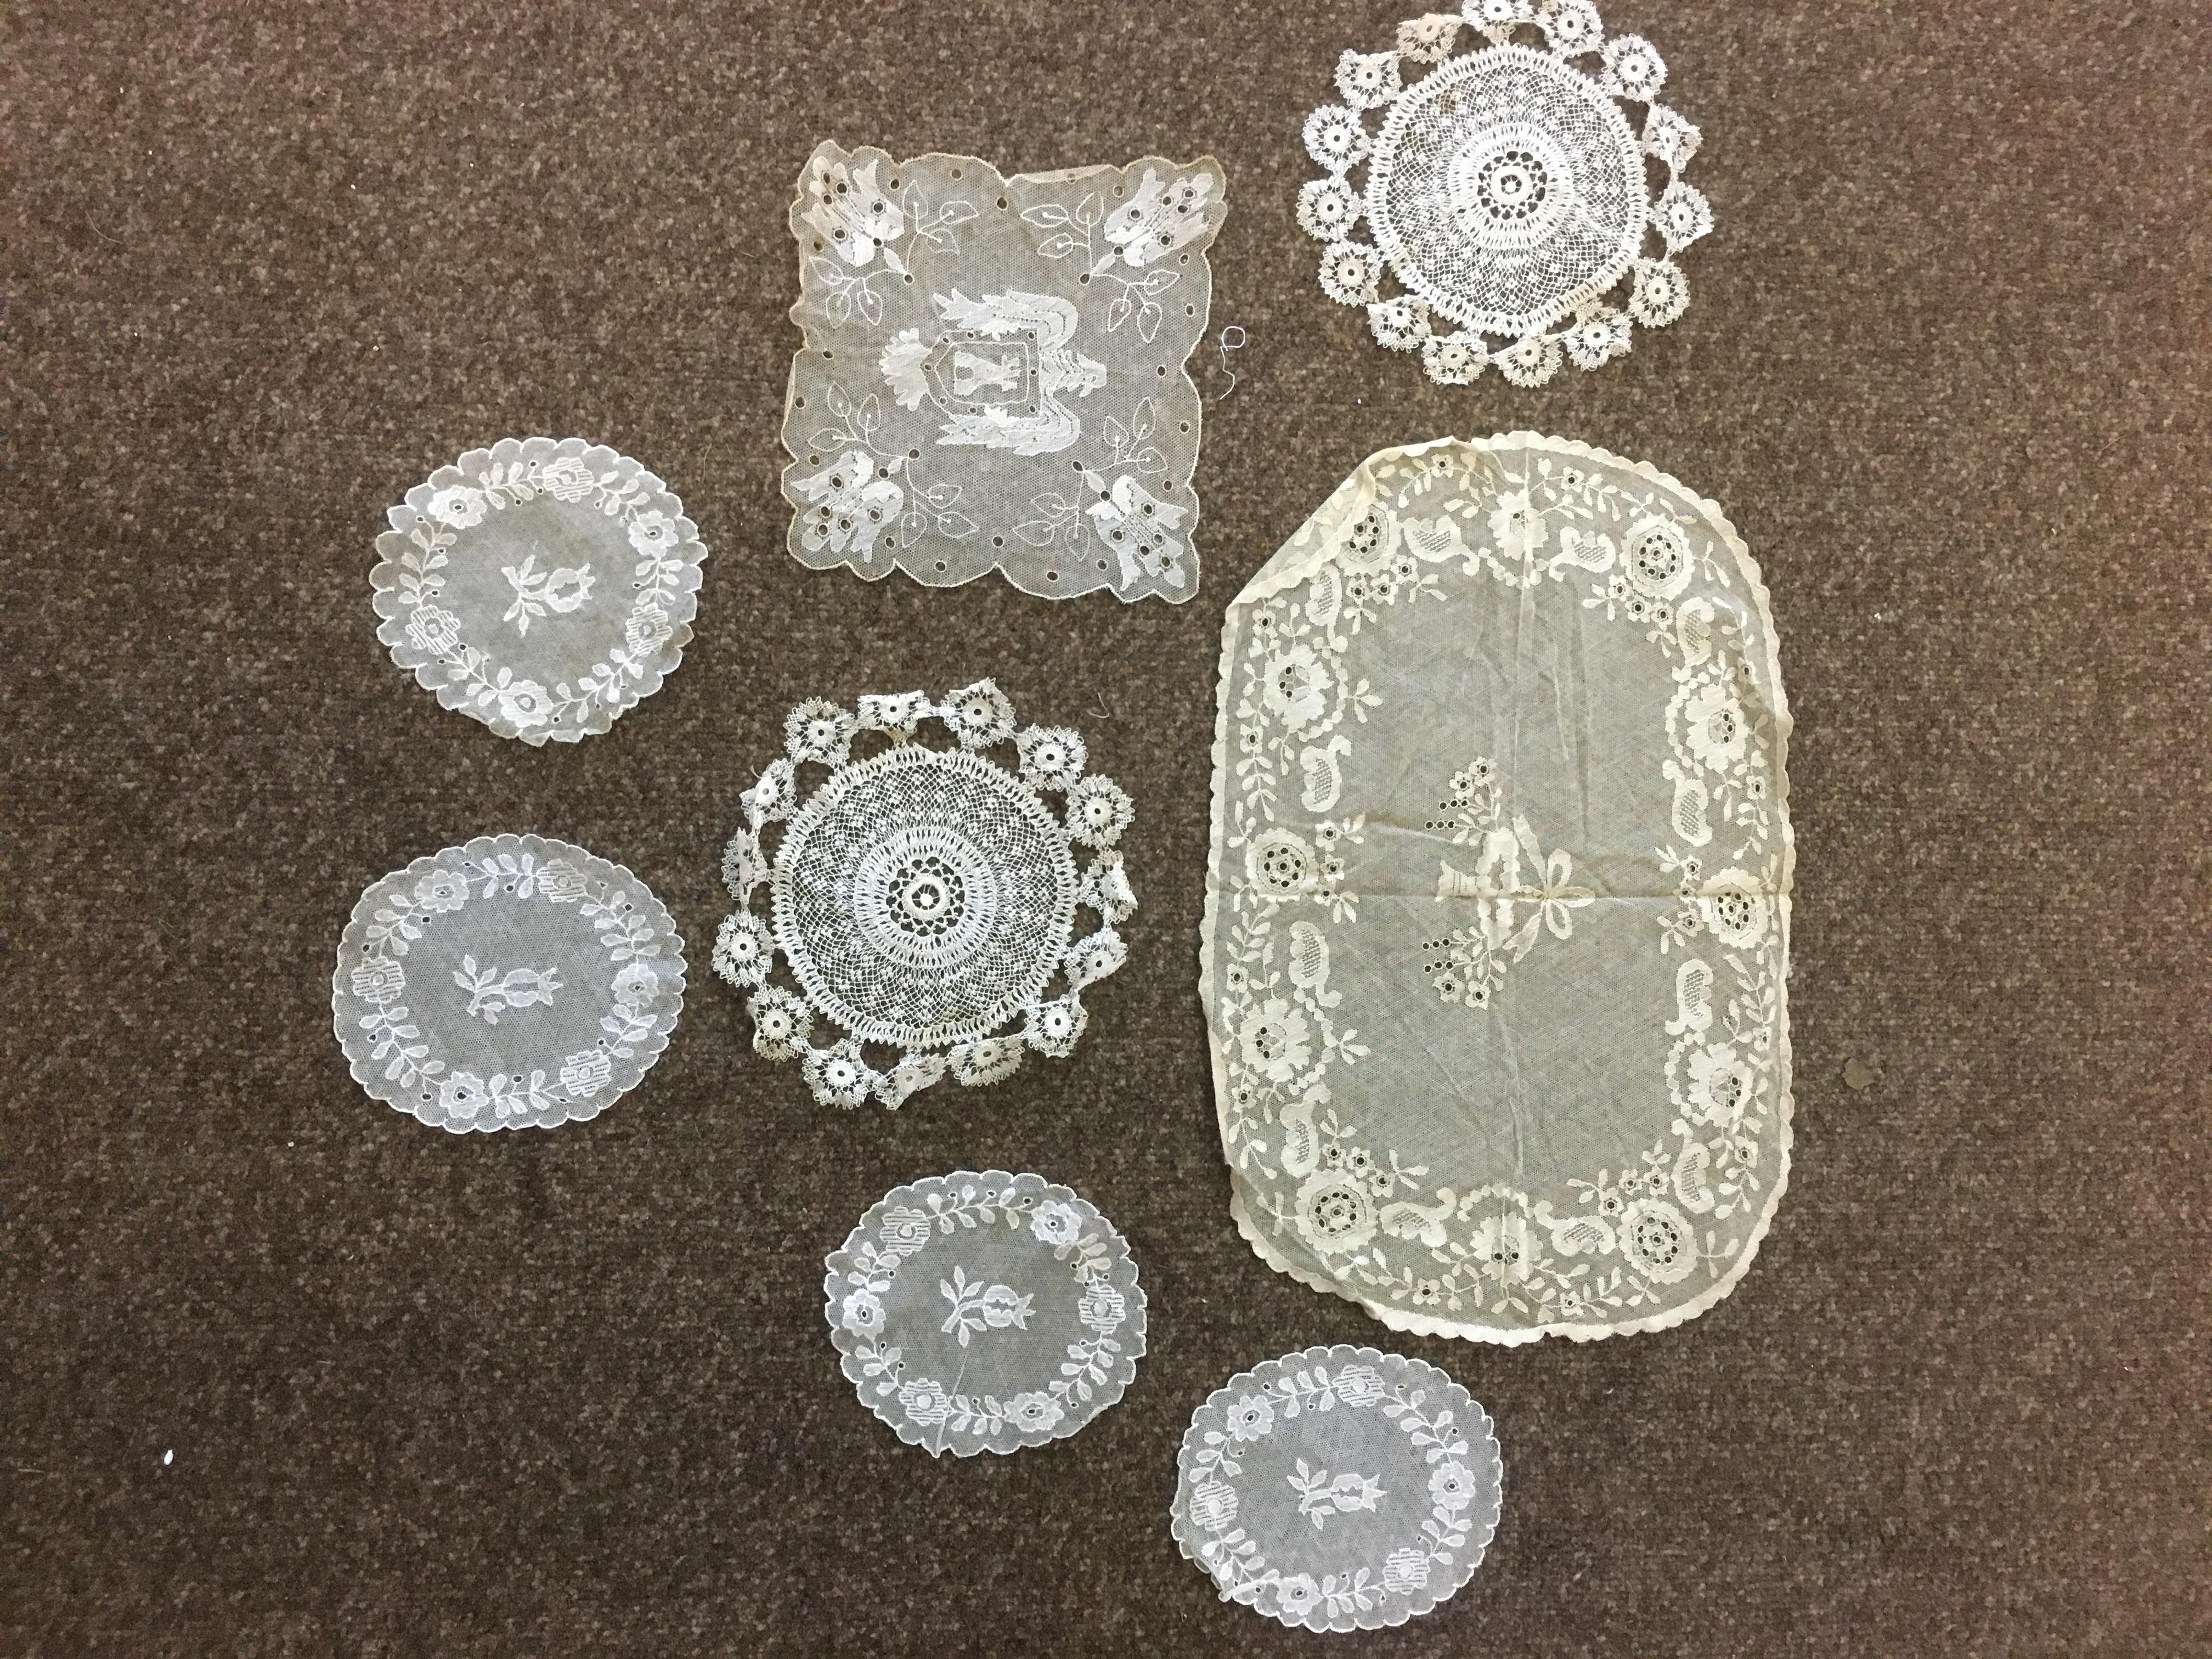 Lot 1854 - VINTAGE LACE a collection of 19thc lace, comprising collars, a fine shawl, a small applique lace